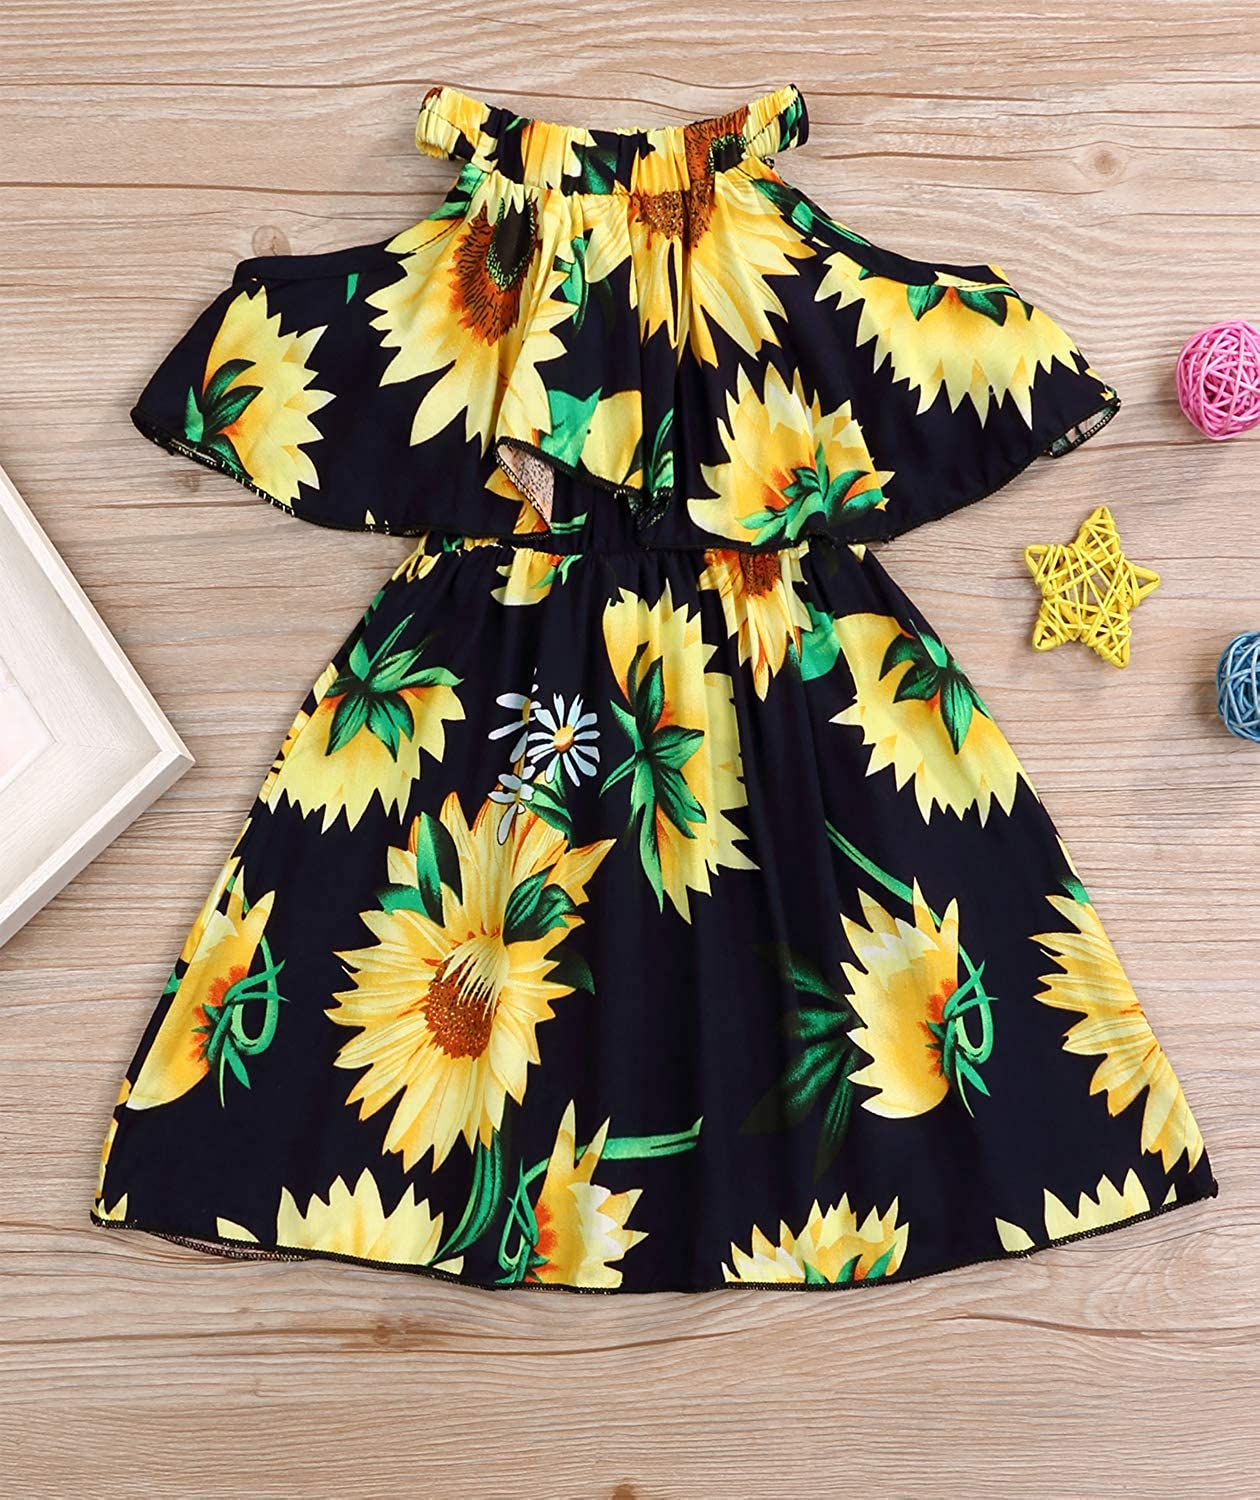 YOUNGER TREE Toddler Baby Girl Dress Sunflower Outfits Off The Shoulder Ruffle Boho Beach Skirts Sundress Summer Cloth 6M-3T